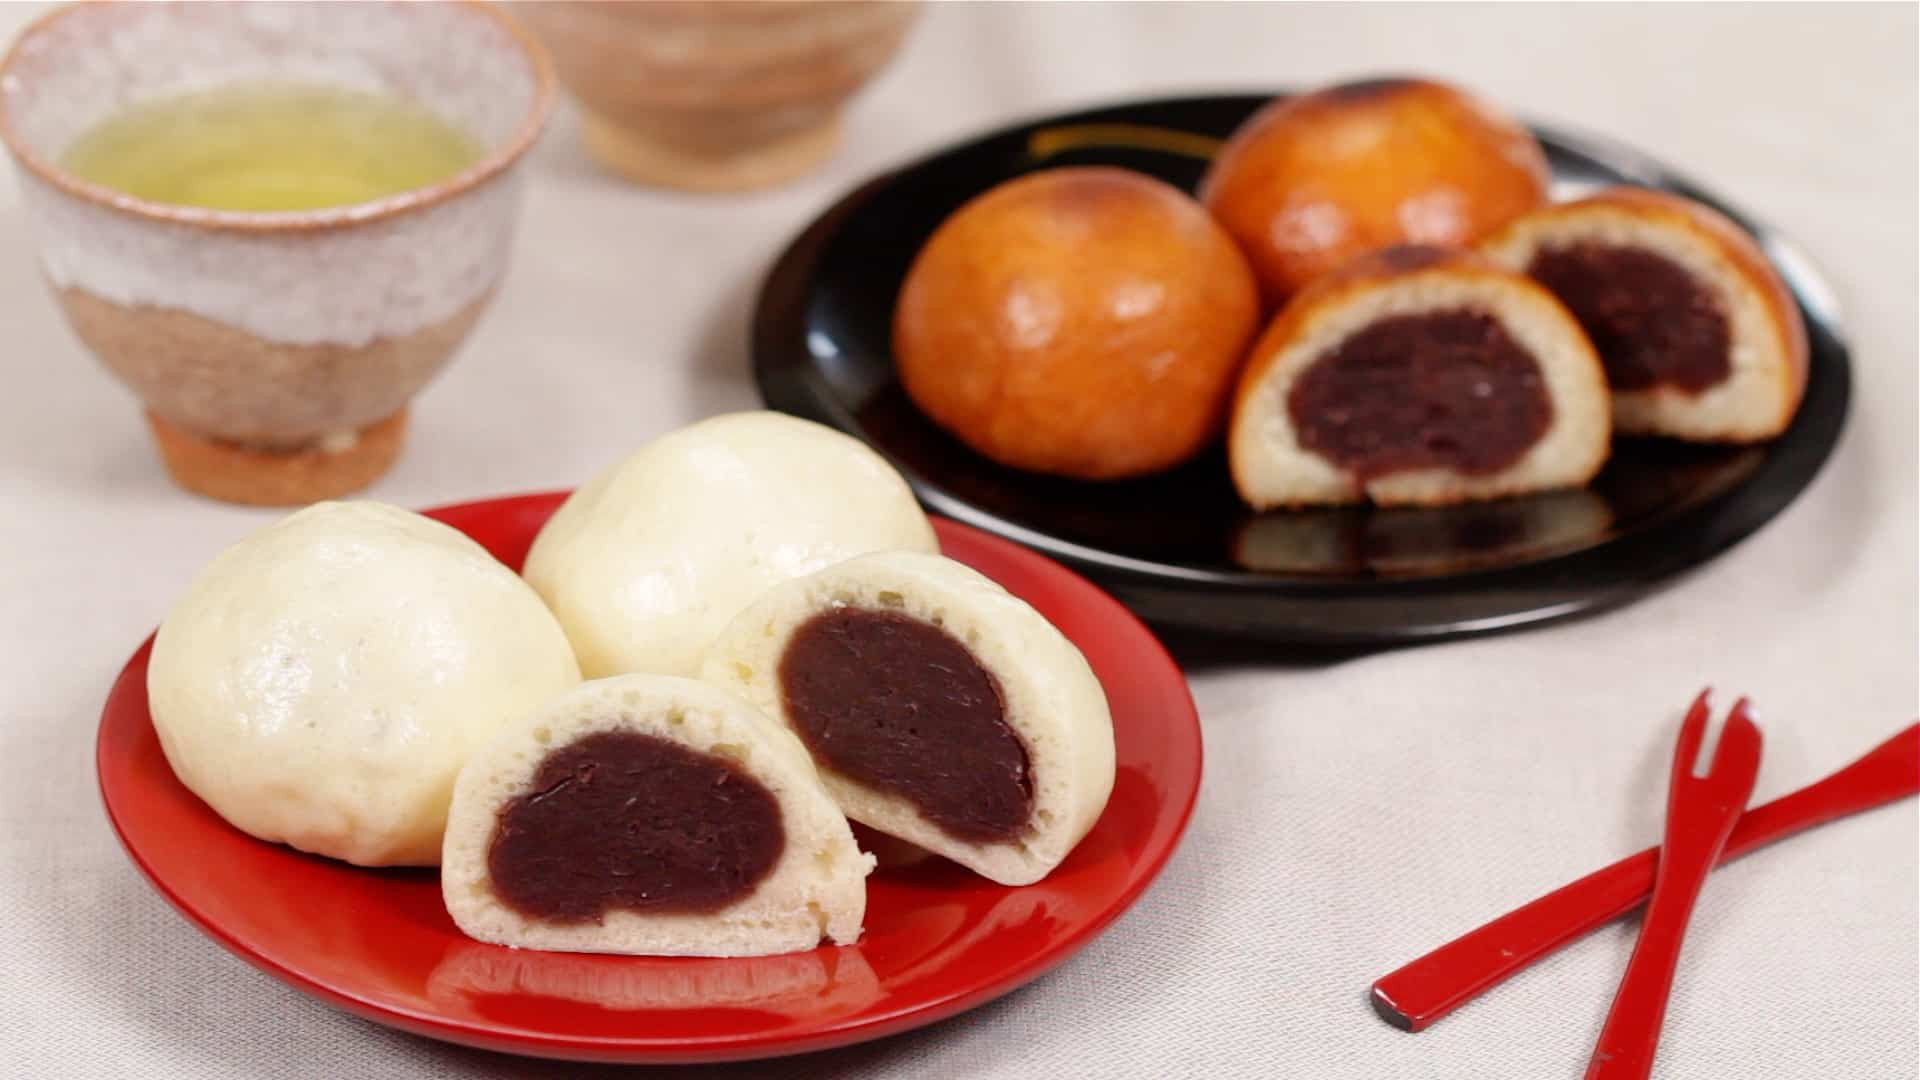 Mushi Manju Recipe Japanese Steamed Buns With Red Bean Paste Filling Cooking With Dog